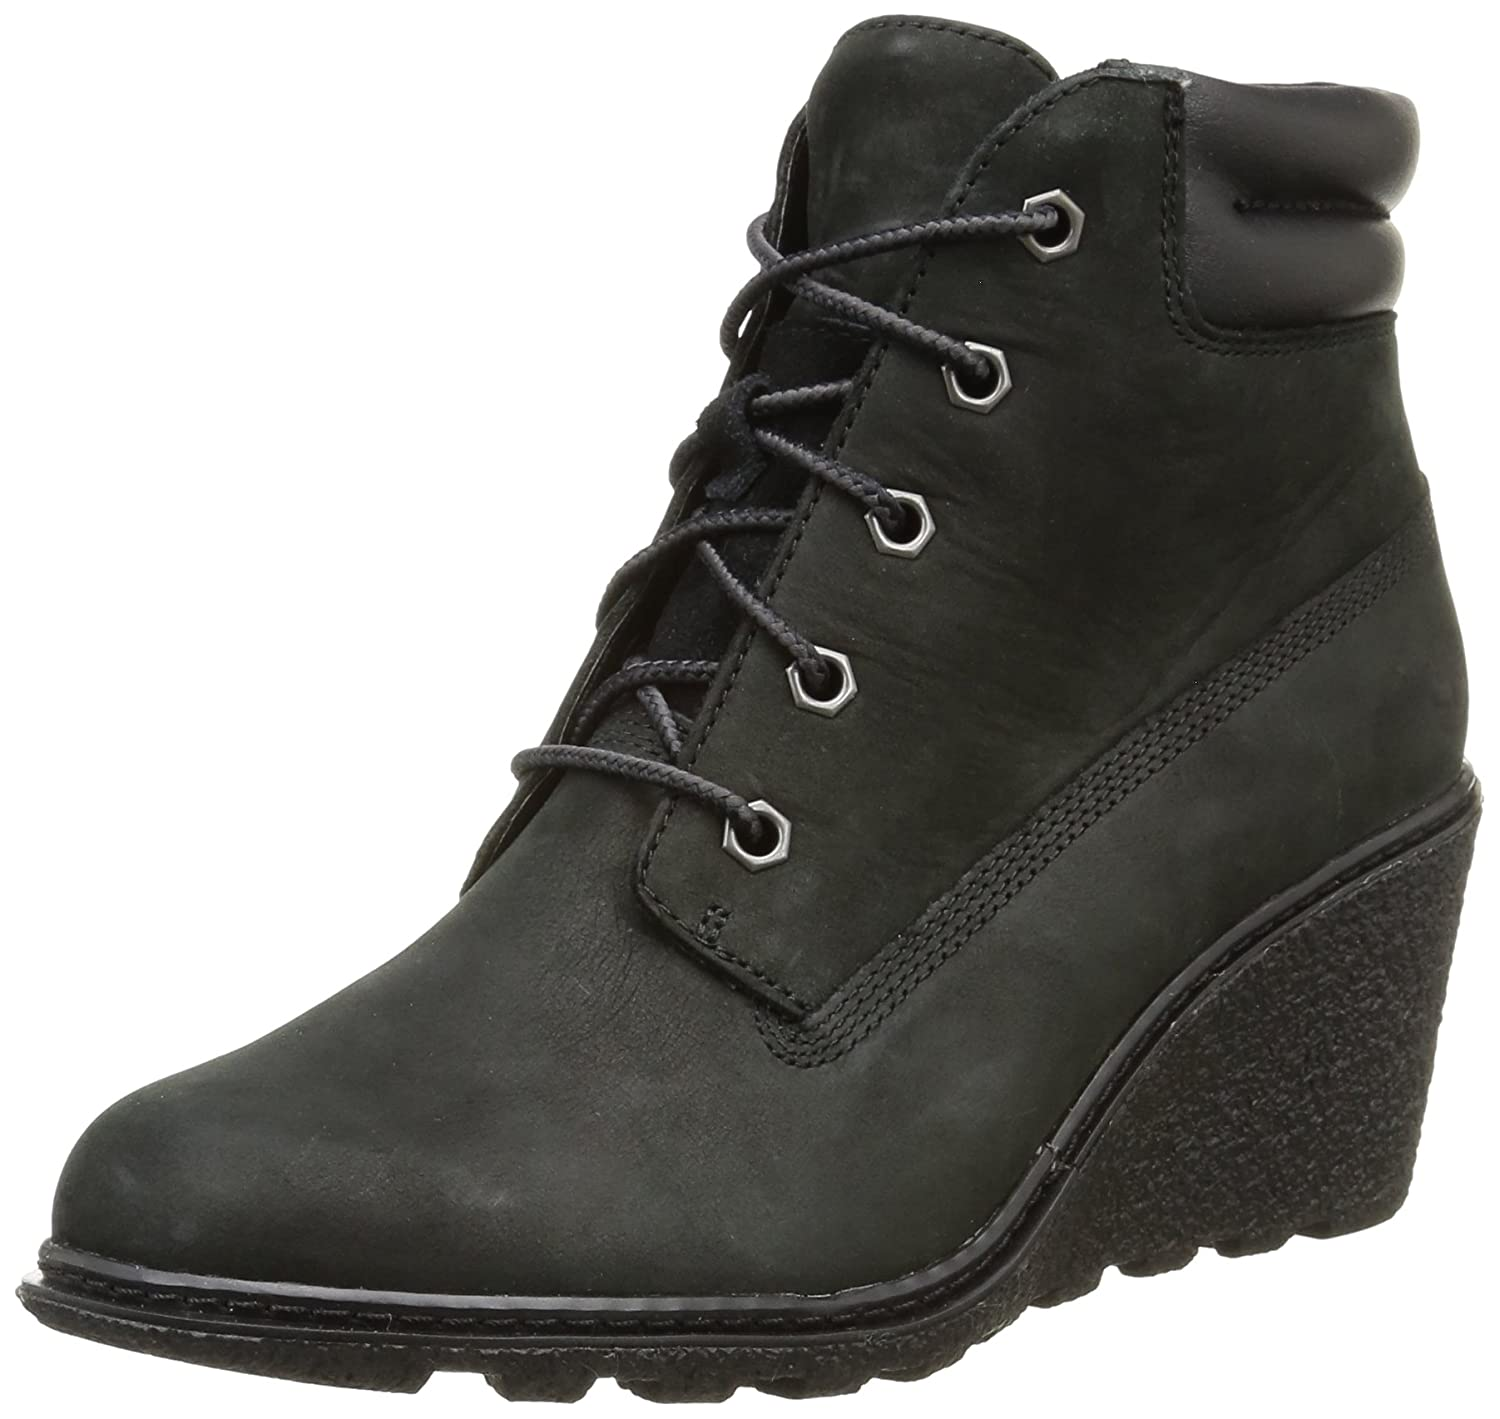 Timberland Ek Ek Amston 6in, Sneakers Hautes Femme Noir Noir Femme (Black) 332d53b - epictionpvp.space